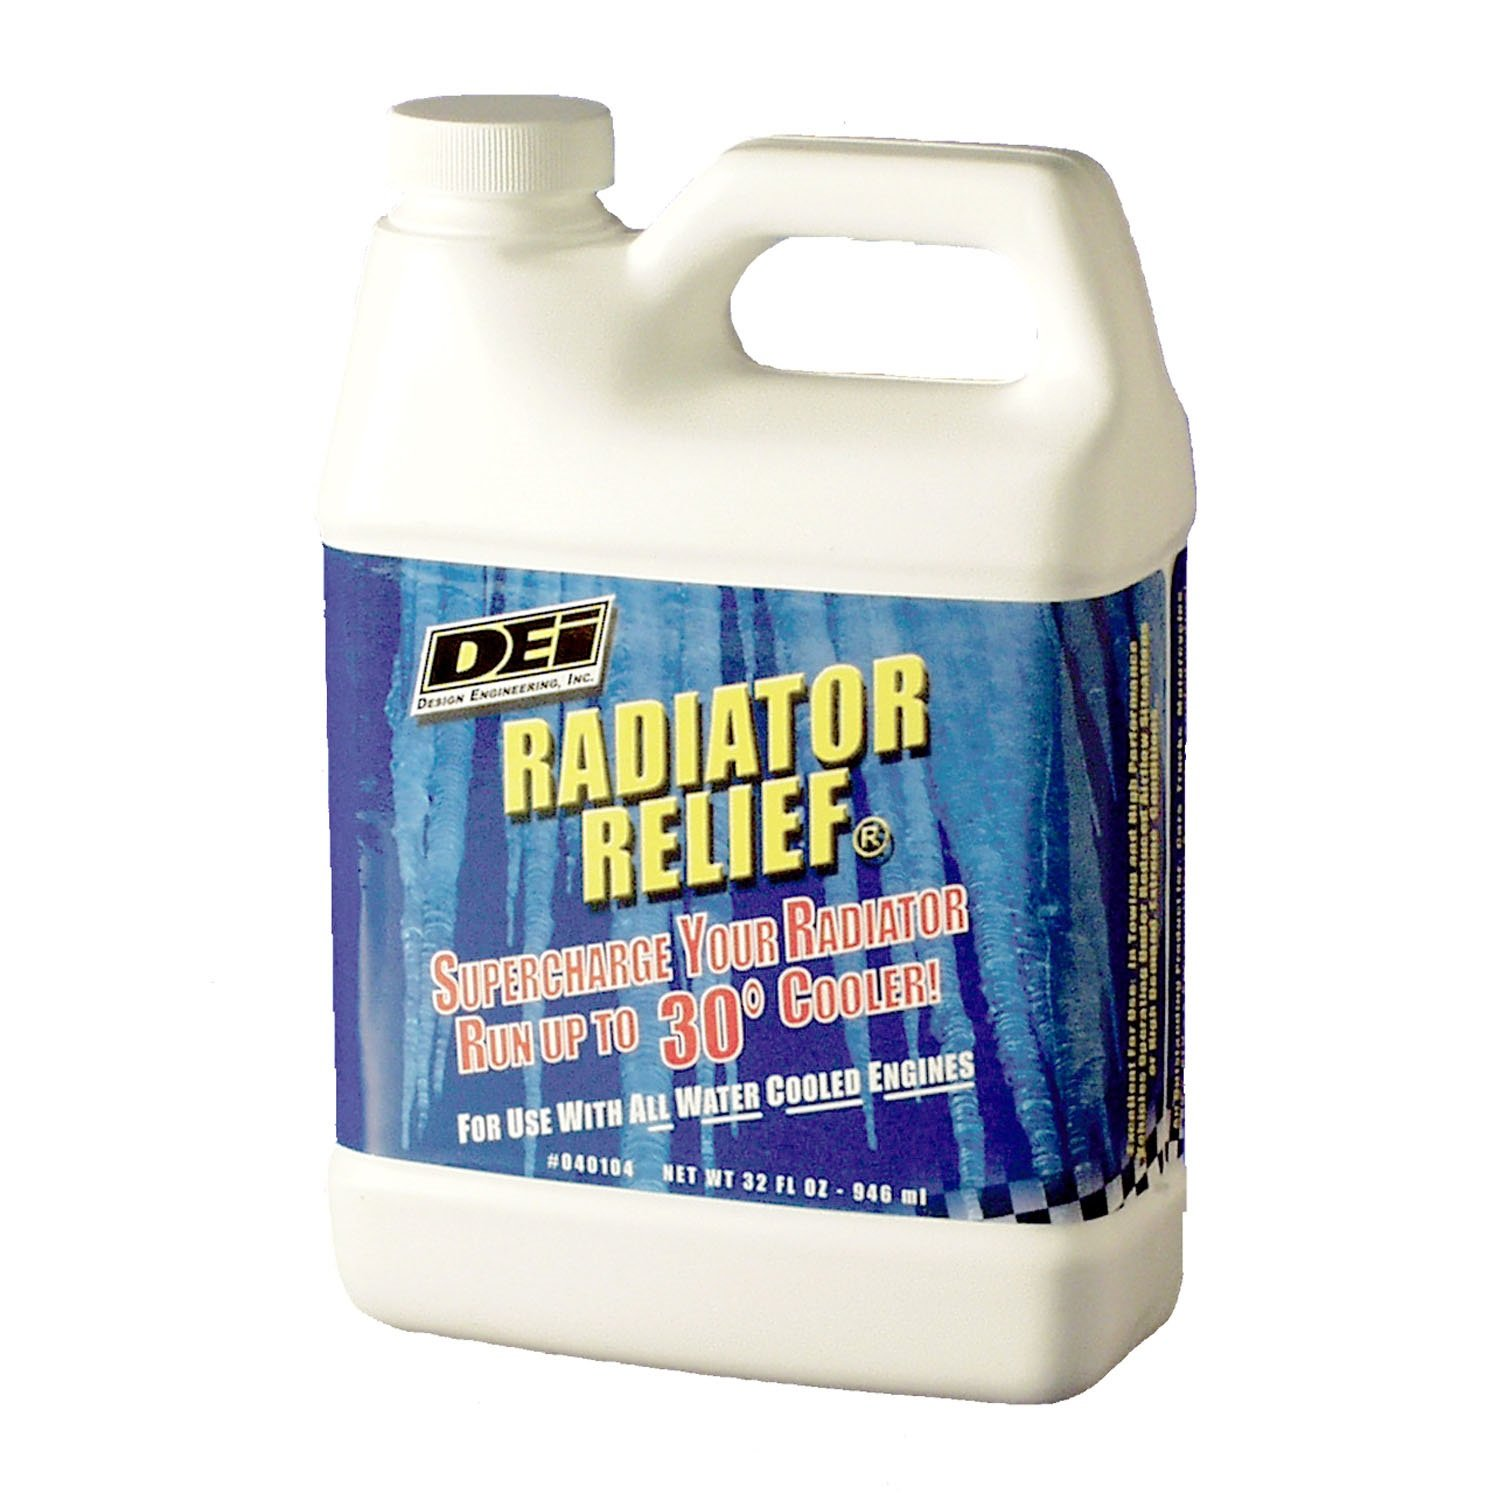 Design Engineering 040104 Radiator Relief Coolant Additive for All Water Cooled Engines, 32 oz. by Design Engineering